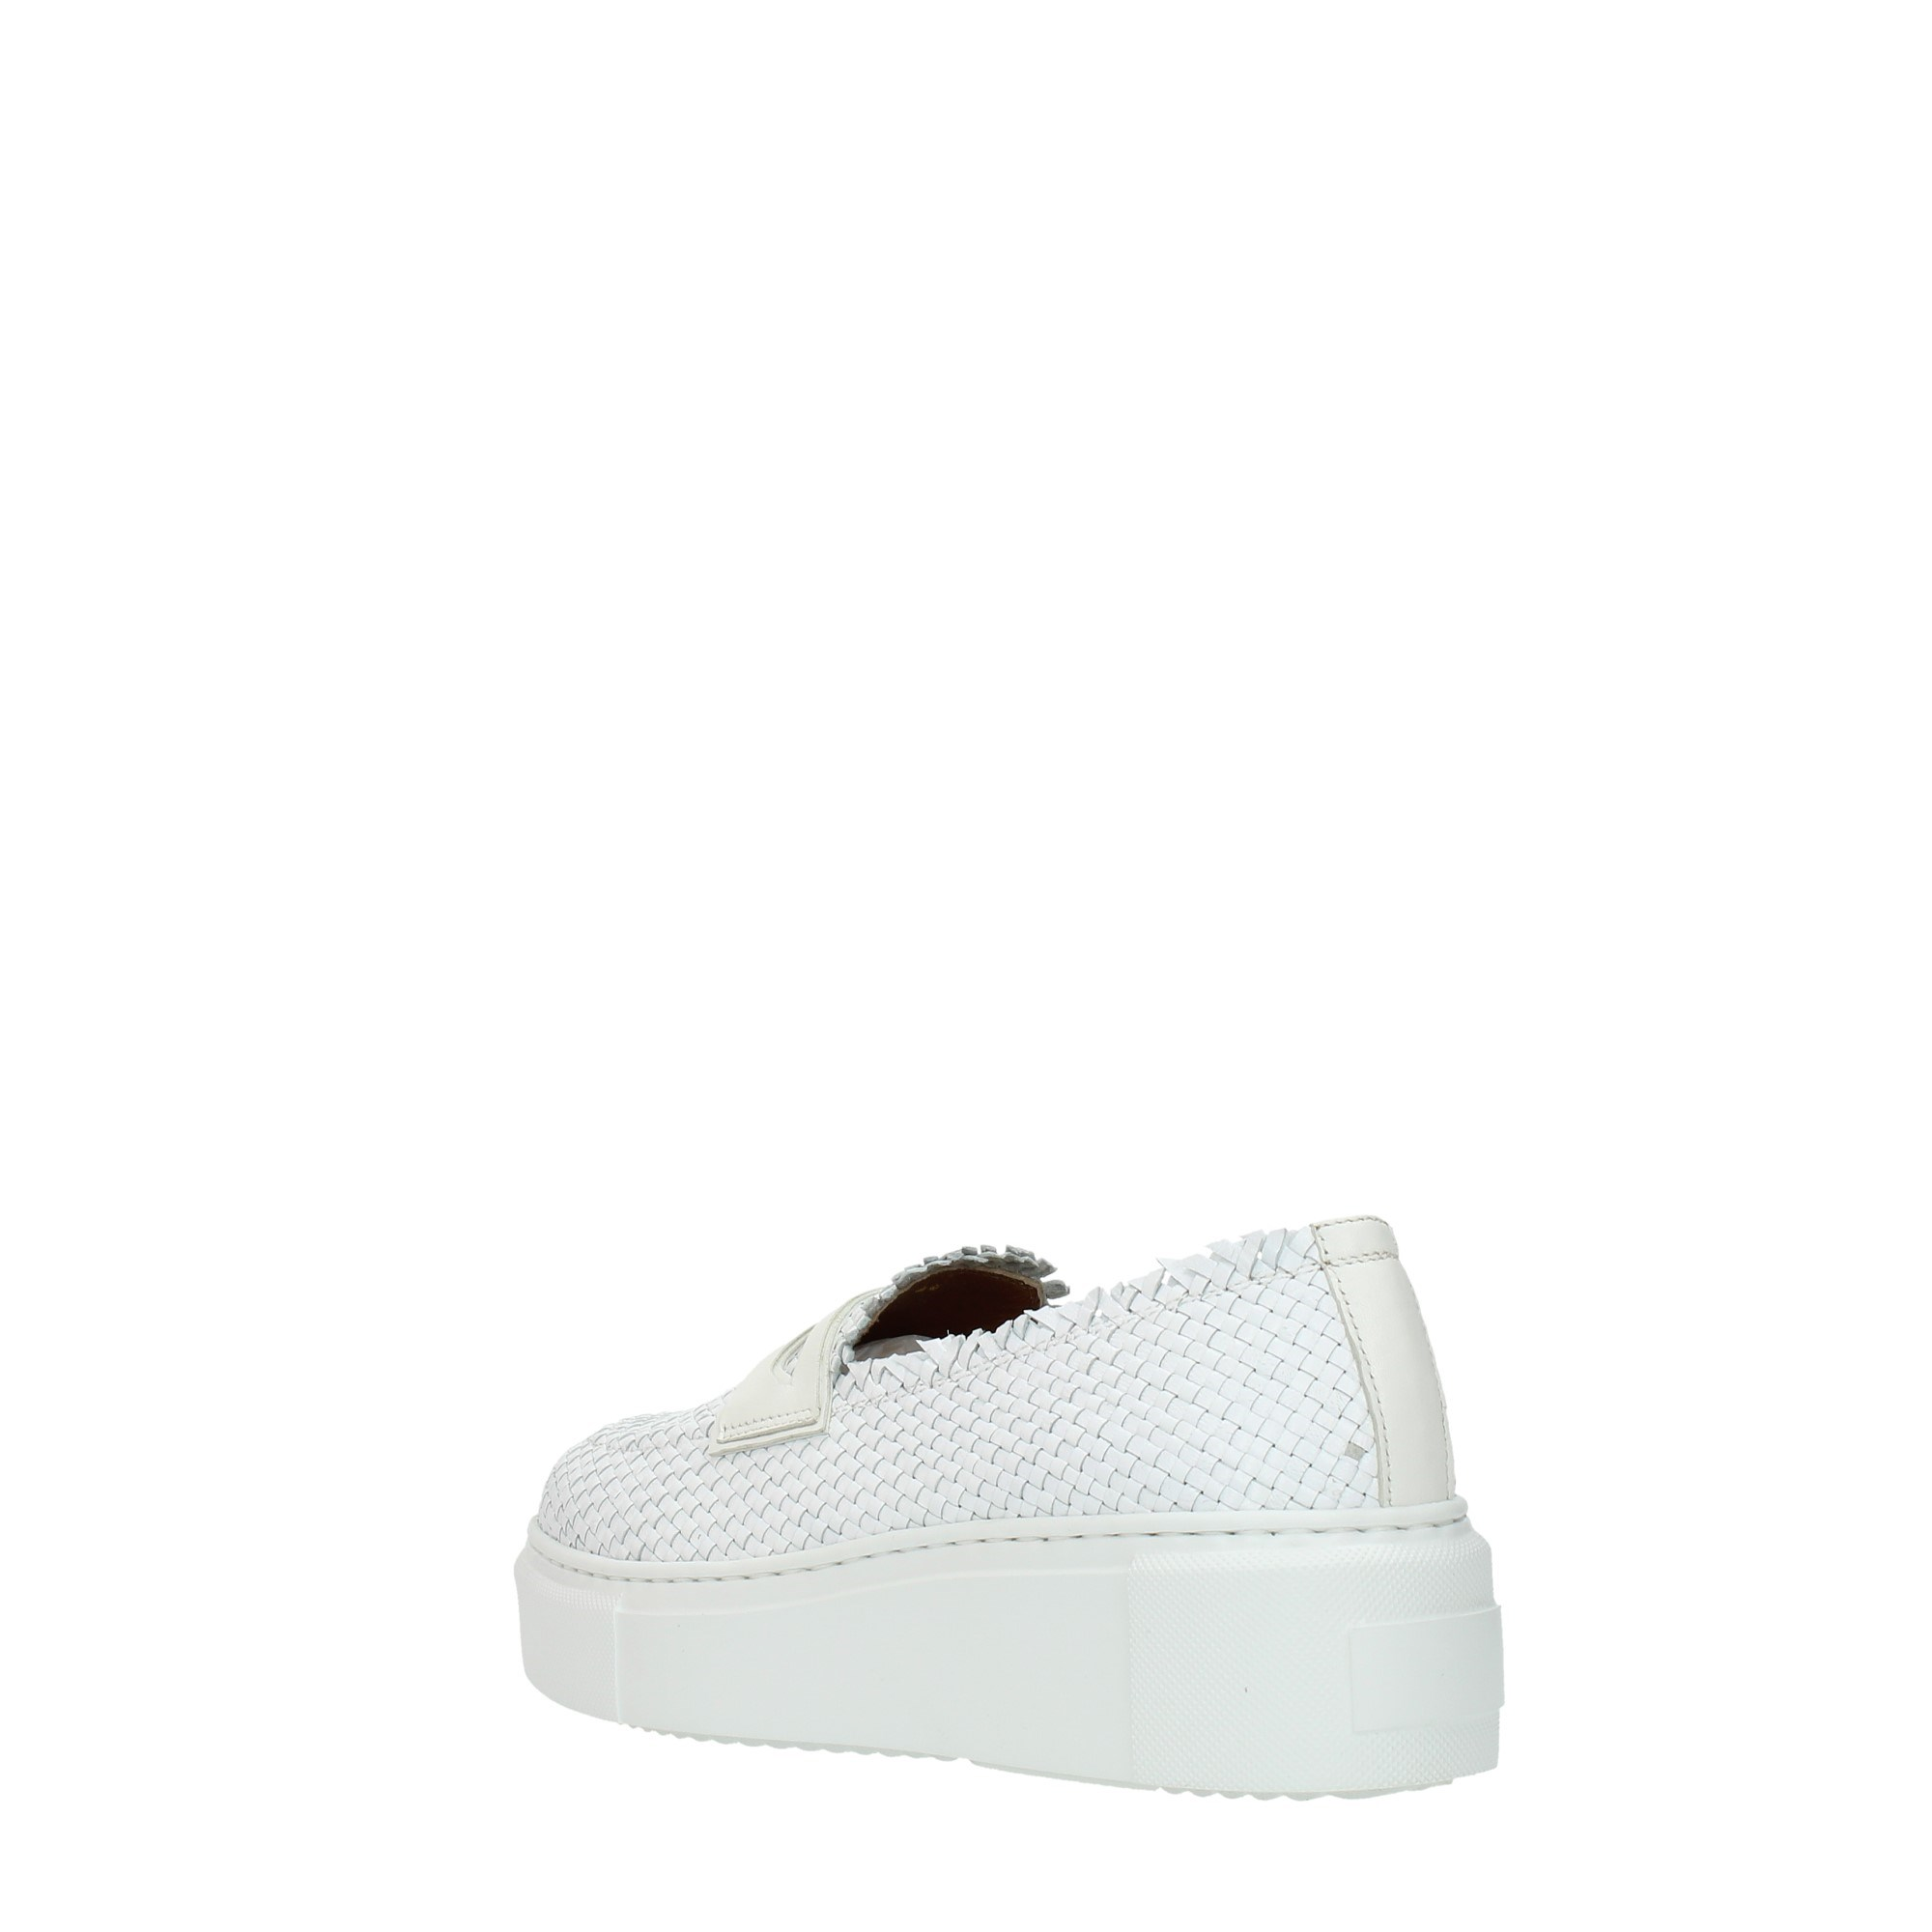 Bervicato Shoes Women Moccasins And Slippers White B4026